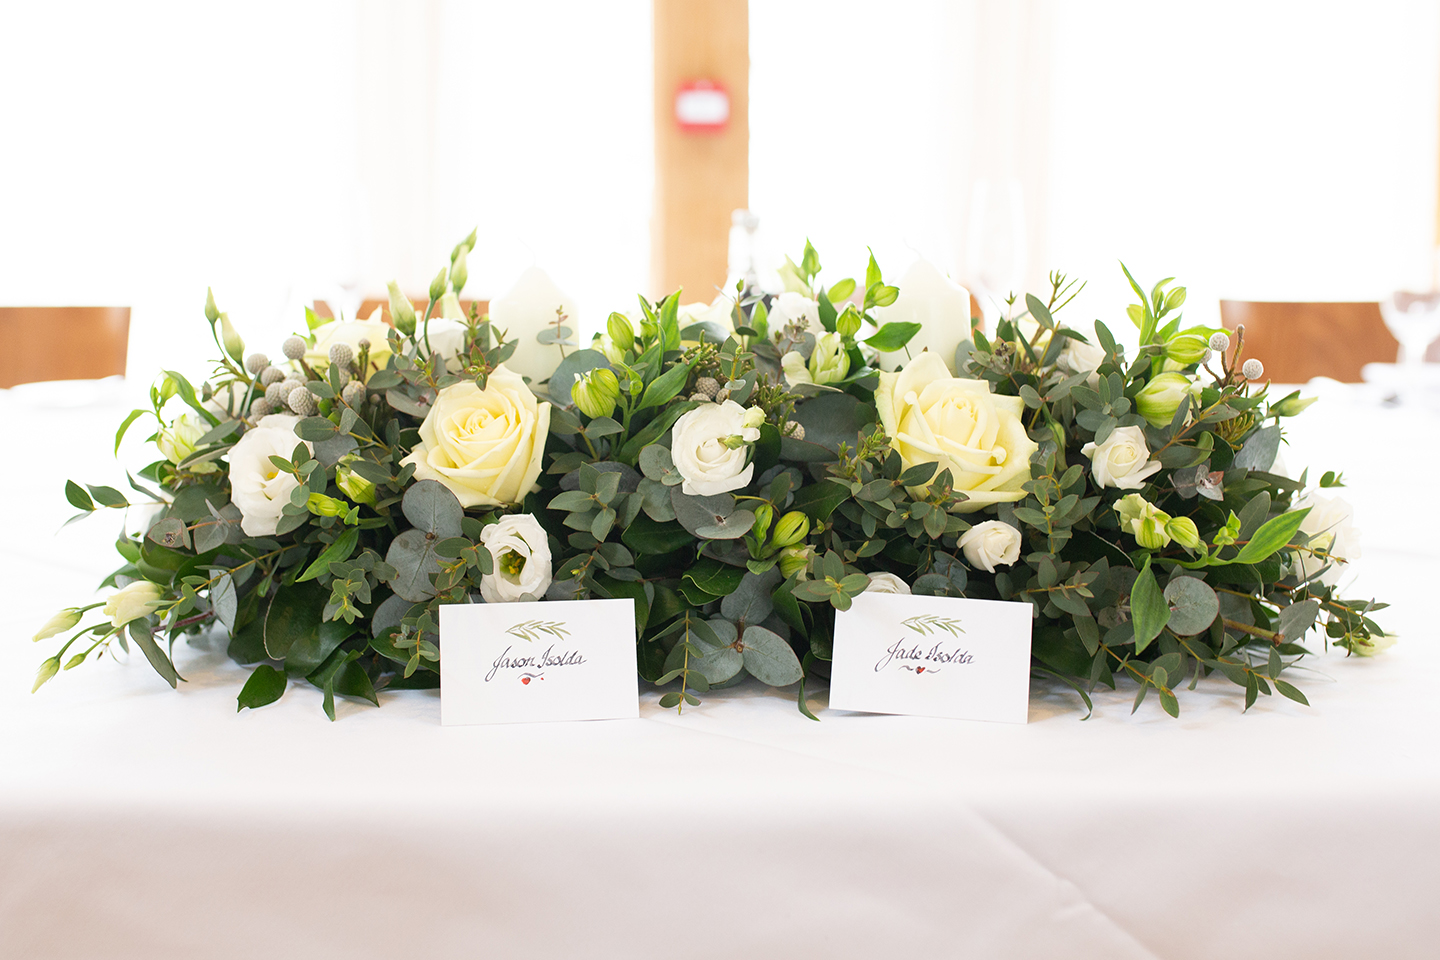 The couple chose white and green florals for their spring wedding at Bassmead Manor Barns